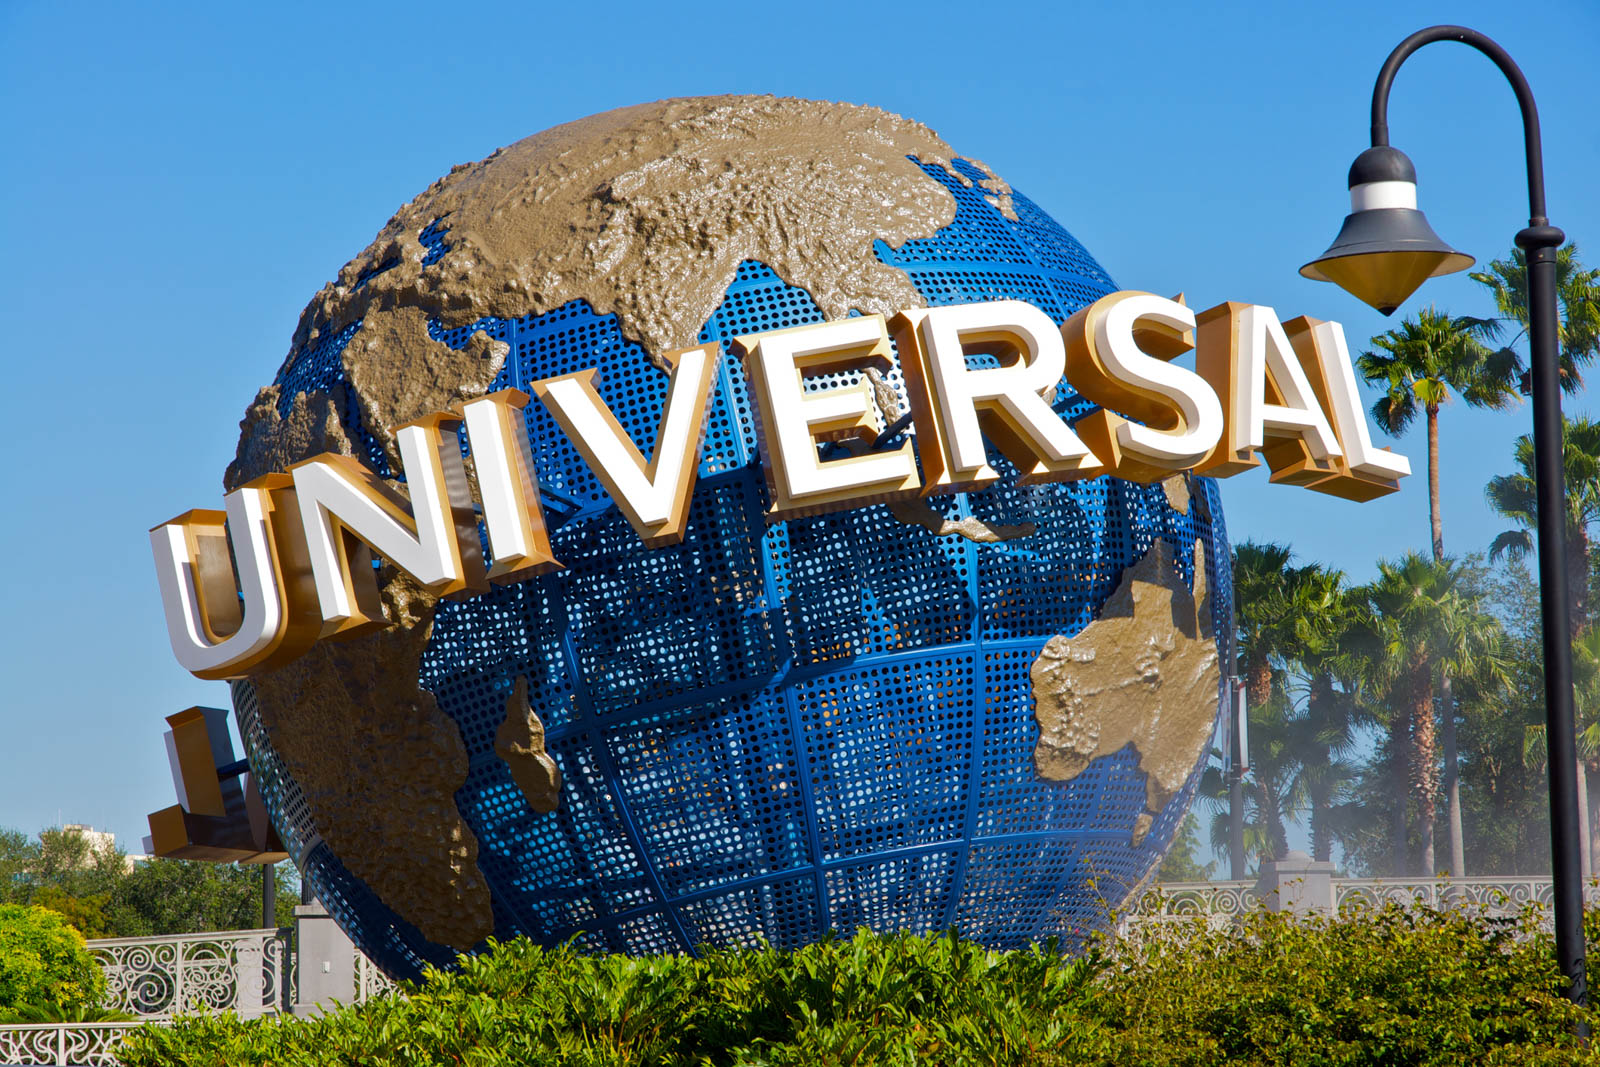 Universal Studios Theme Park is one of the truly fun things to do in Orlando. Find other cheap things to do in Orlando by reading this guide.